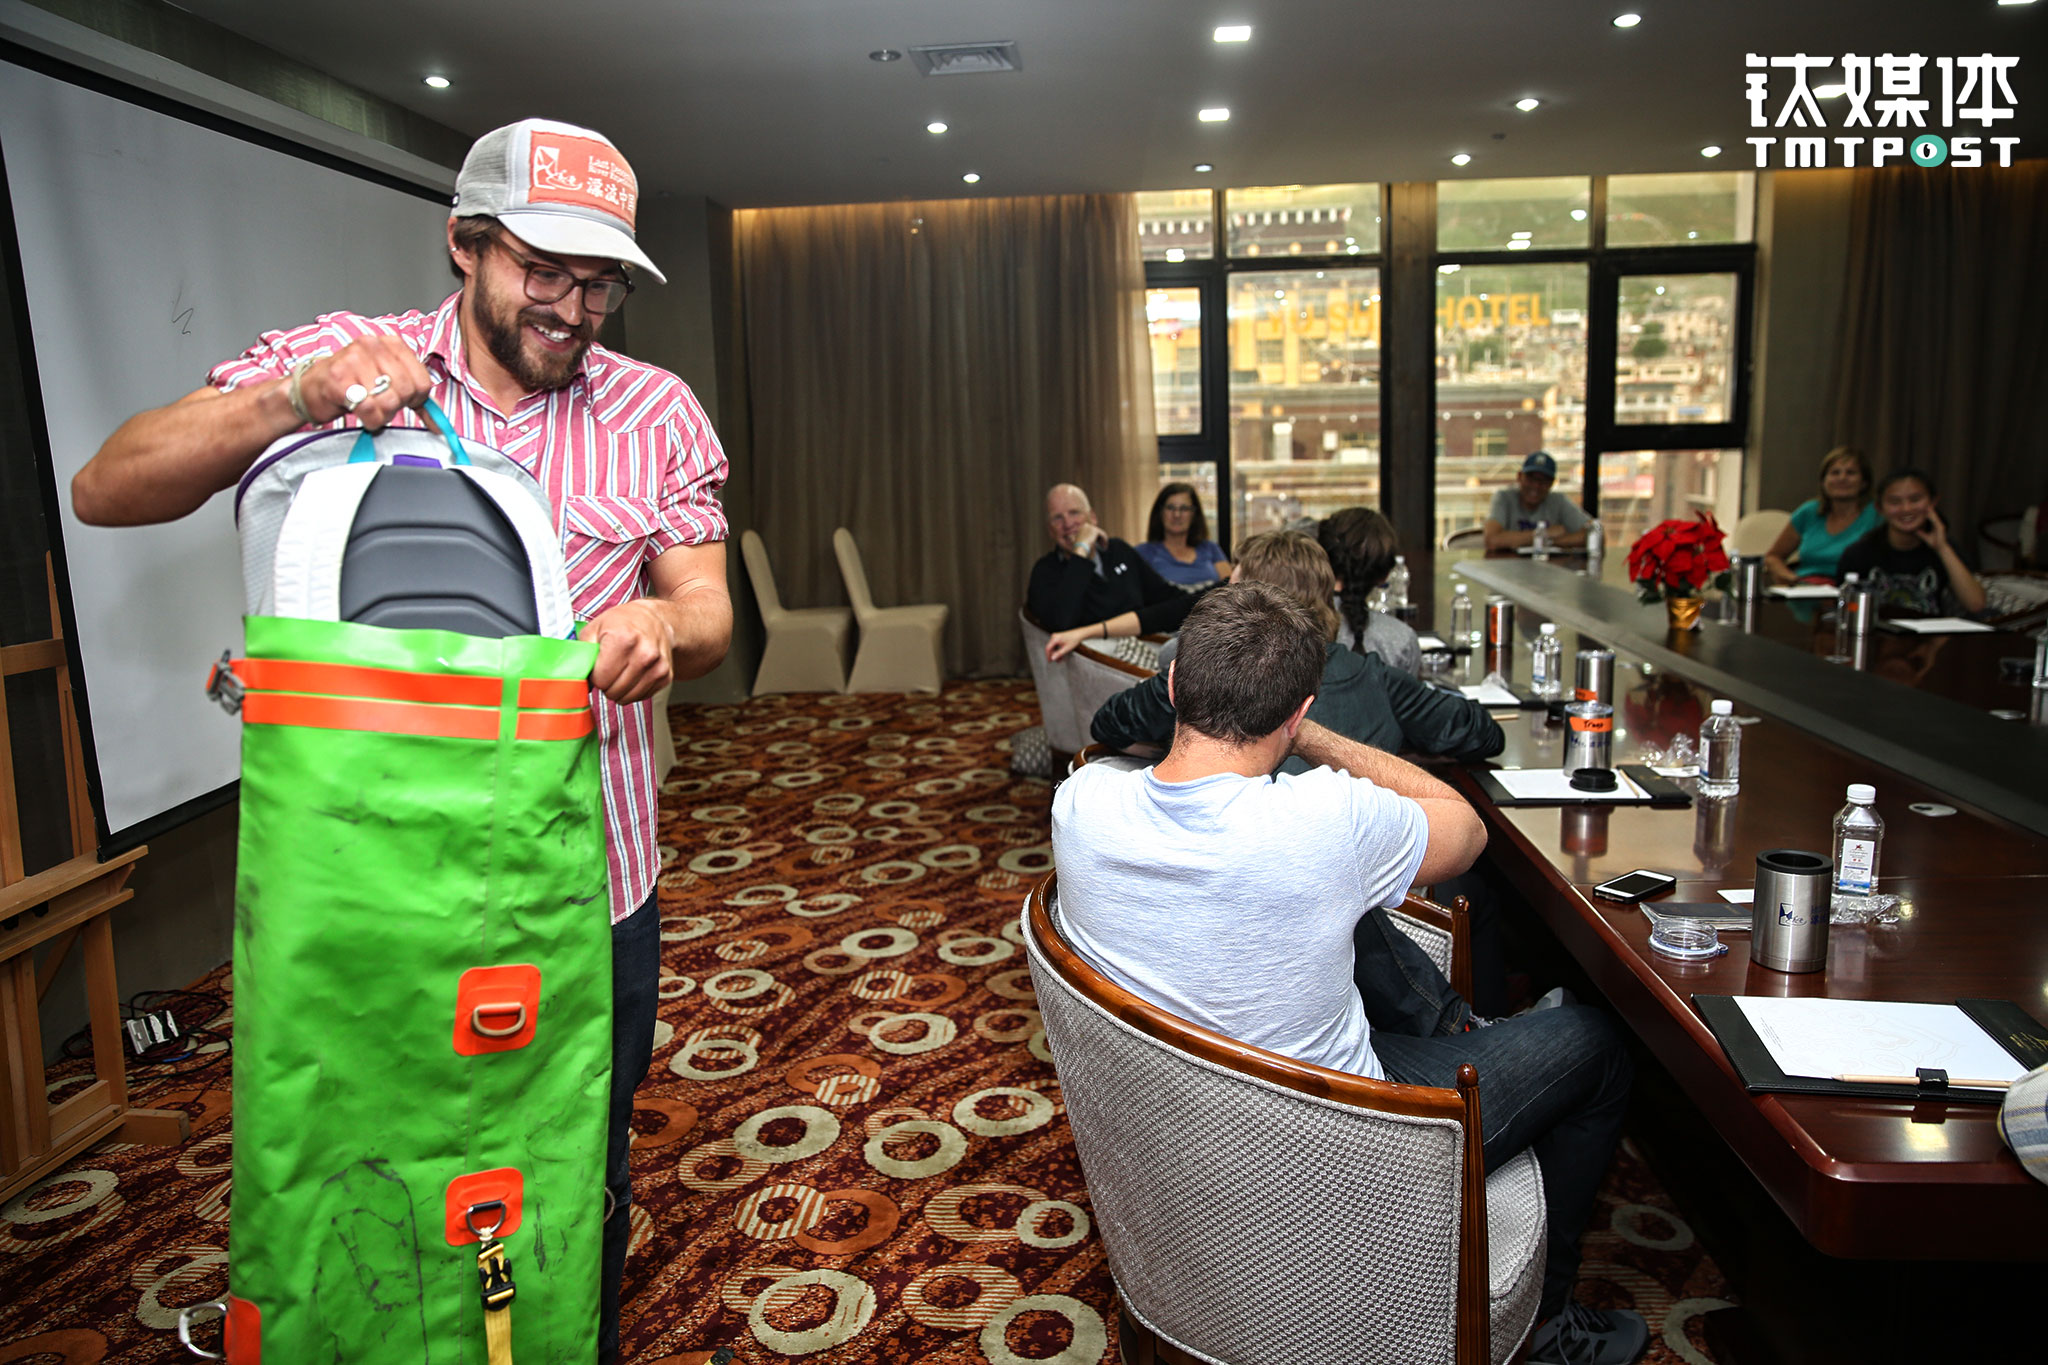 June 23rd, 2017, at Yushu, Qinghai province. Several days before the journey began, Last Descents' team was having a preparation meeting. Captain Jed was briefing 12 guests from the U.S. on the trip details, and giving out water-proof bags and rafting suits.